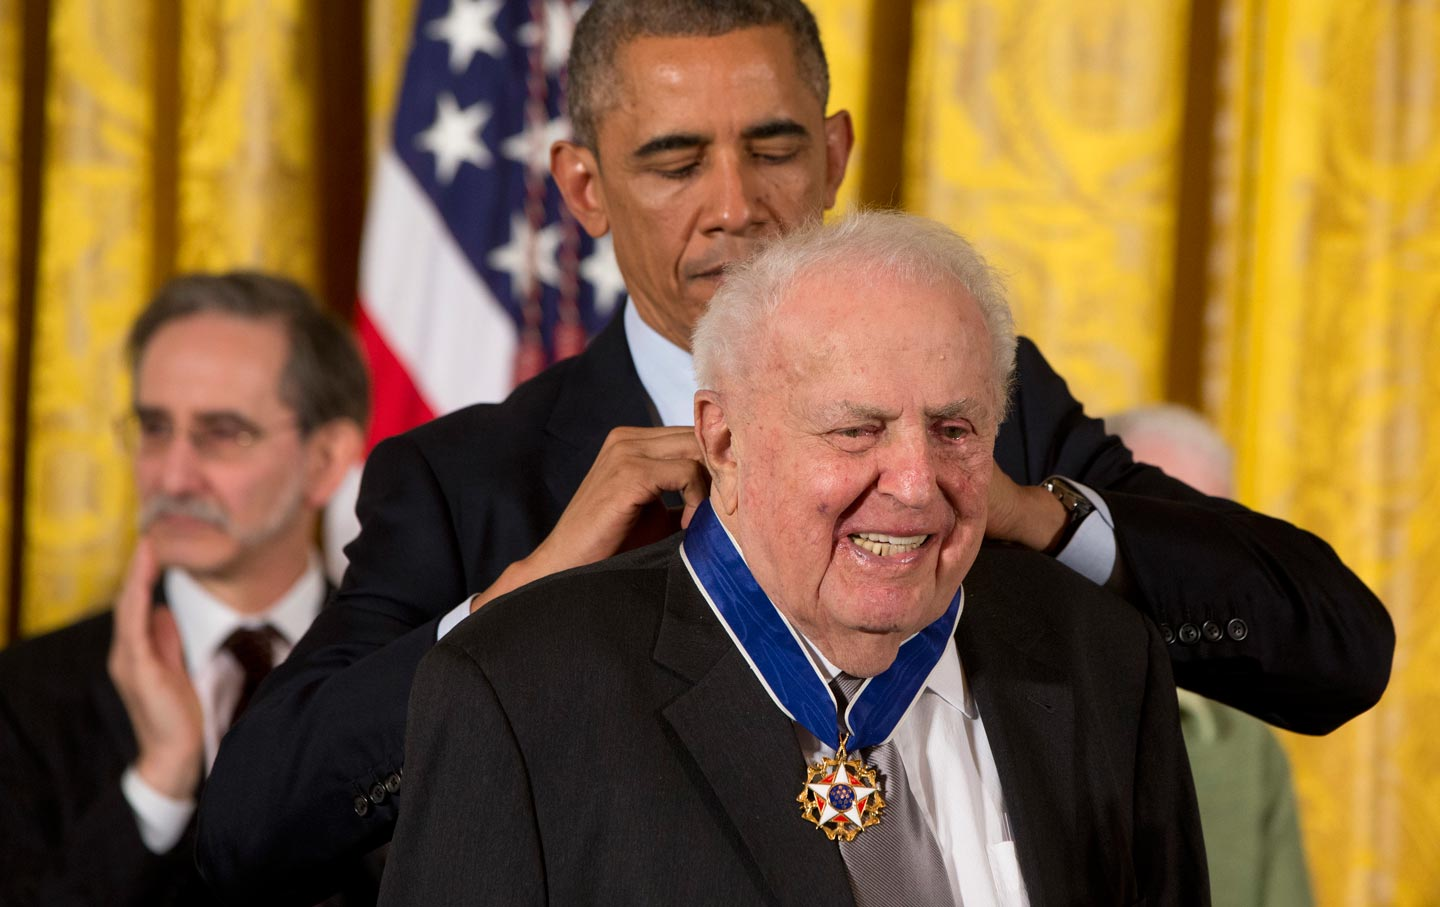 Abner Mikva and Barack Obama